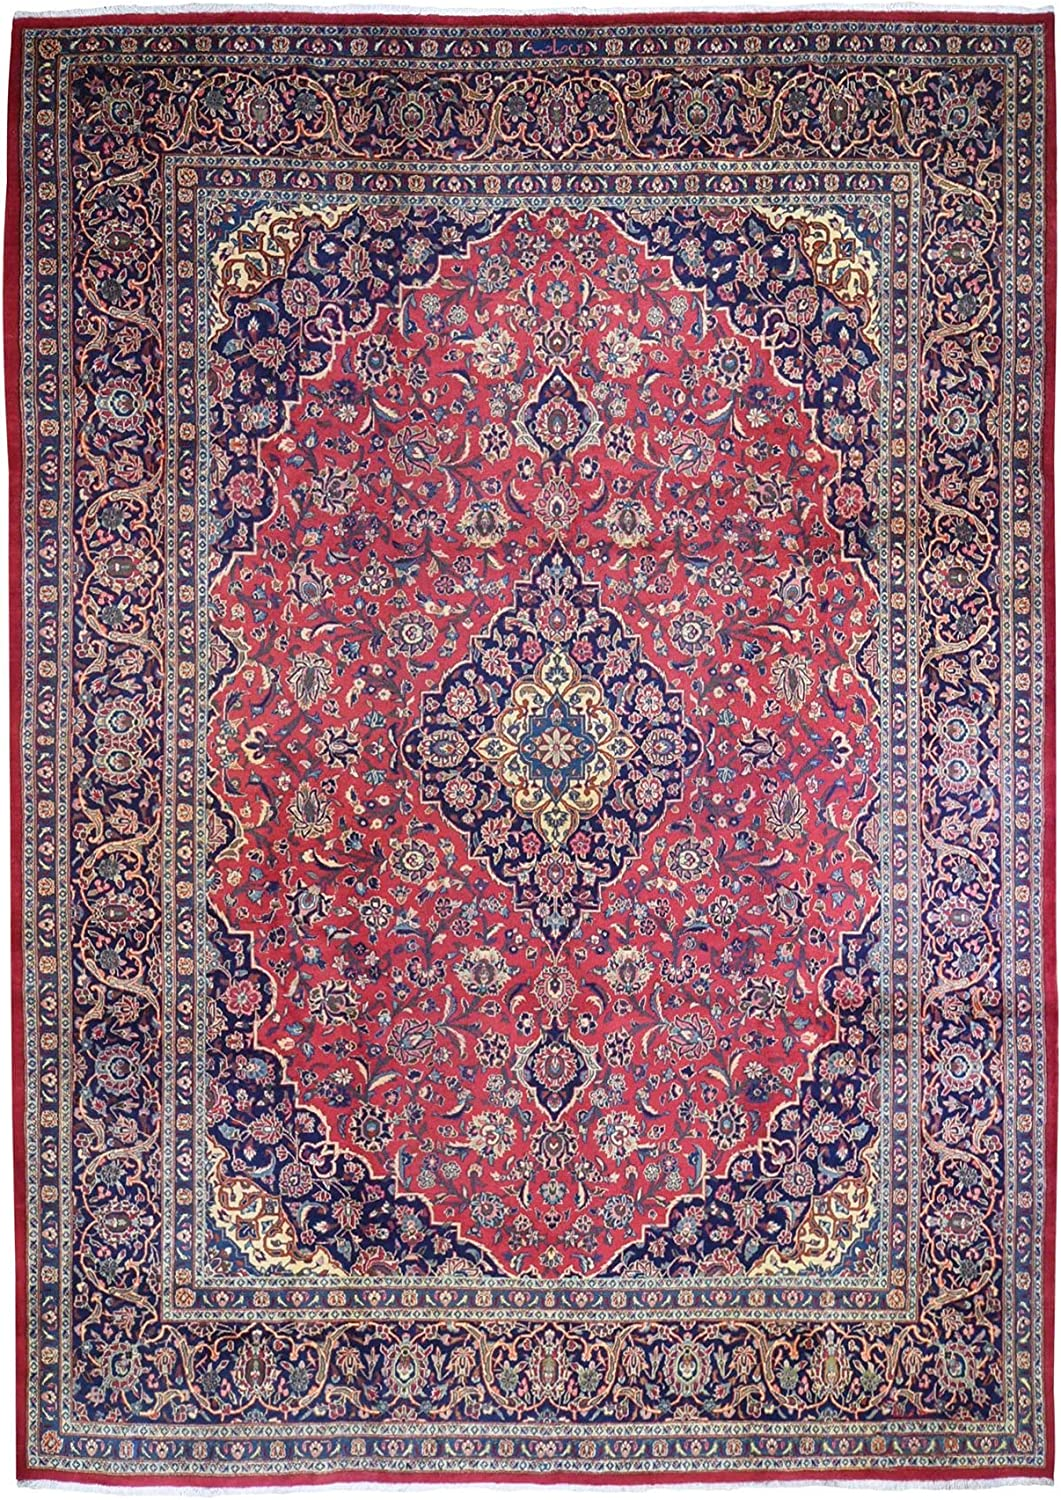 Shahbanu 100% Save money quality warranty Rugs Old Persian Kashan Thick Plush Woo Organic and Red